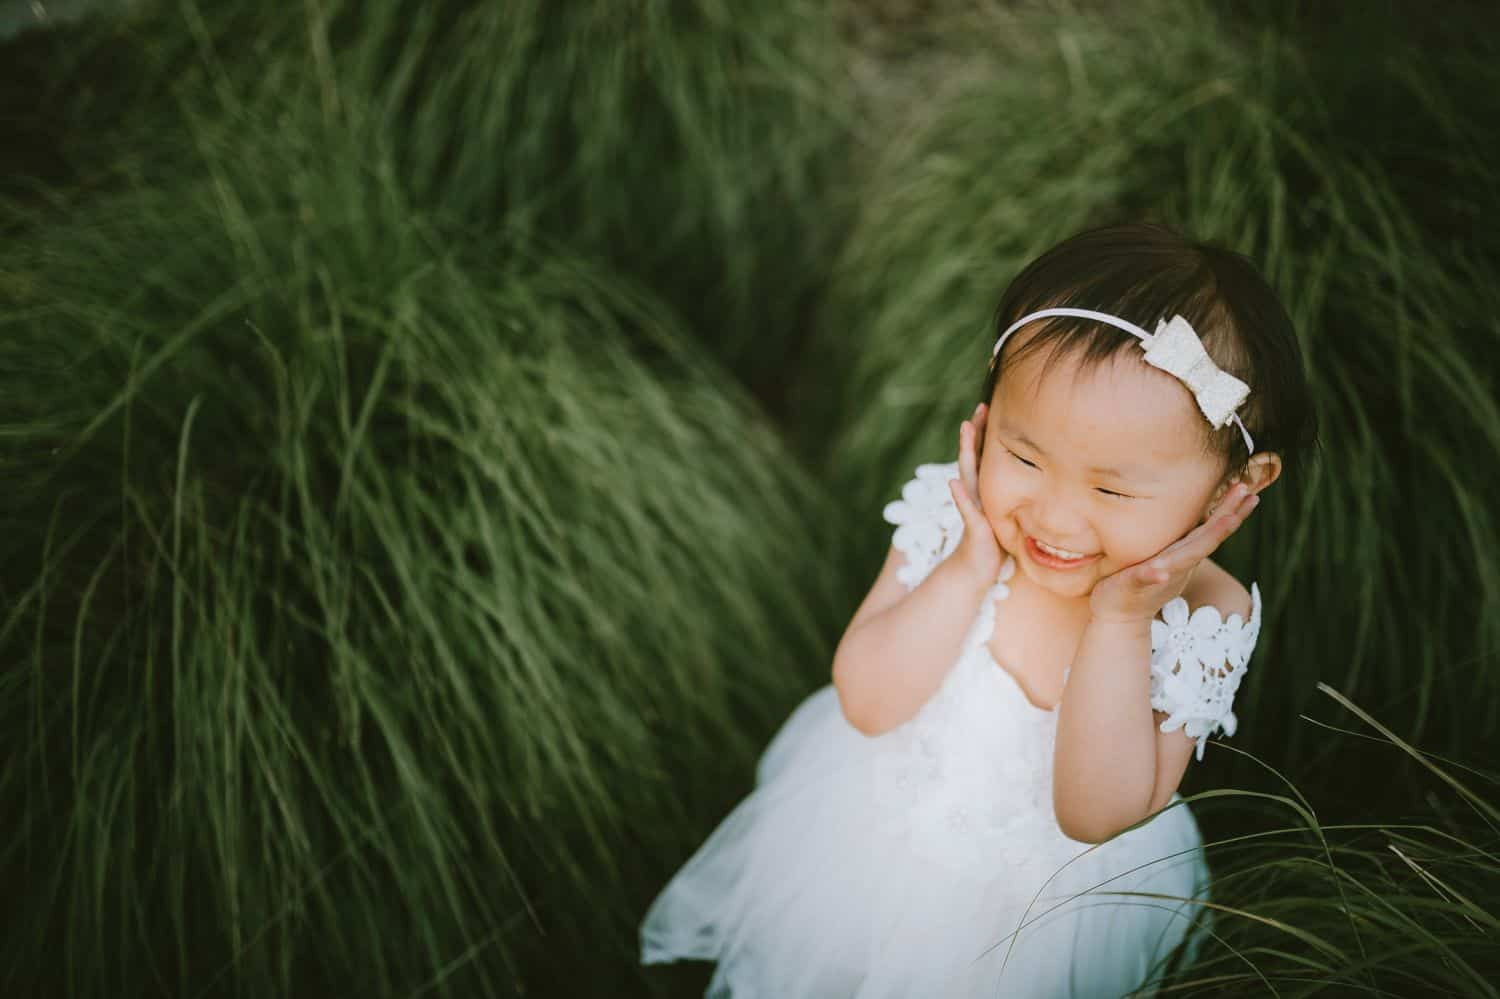 A little girl in a white dress and white headband stands in tall grass. She is laughing, and her hands are on either side of her face.